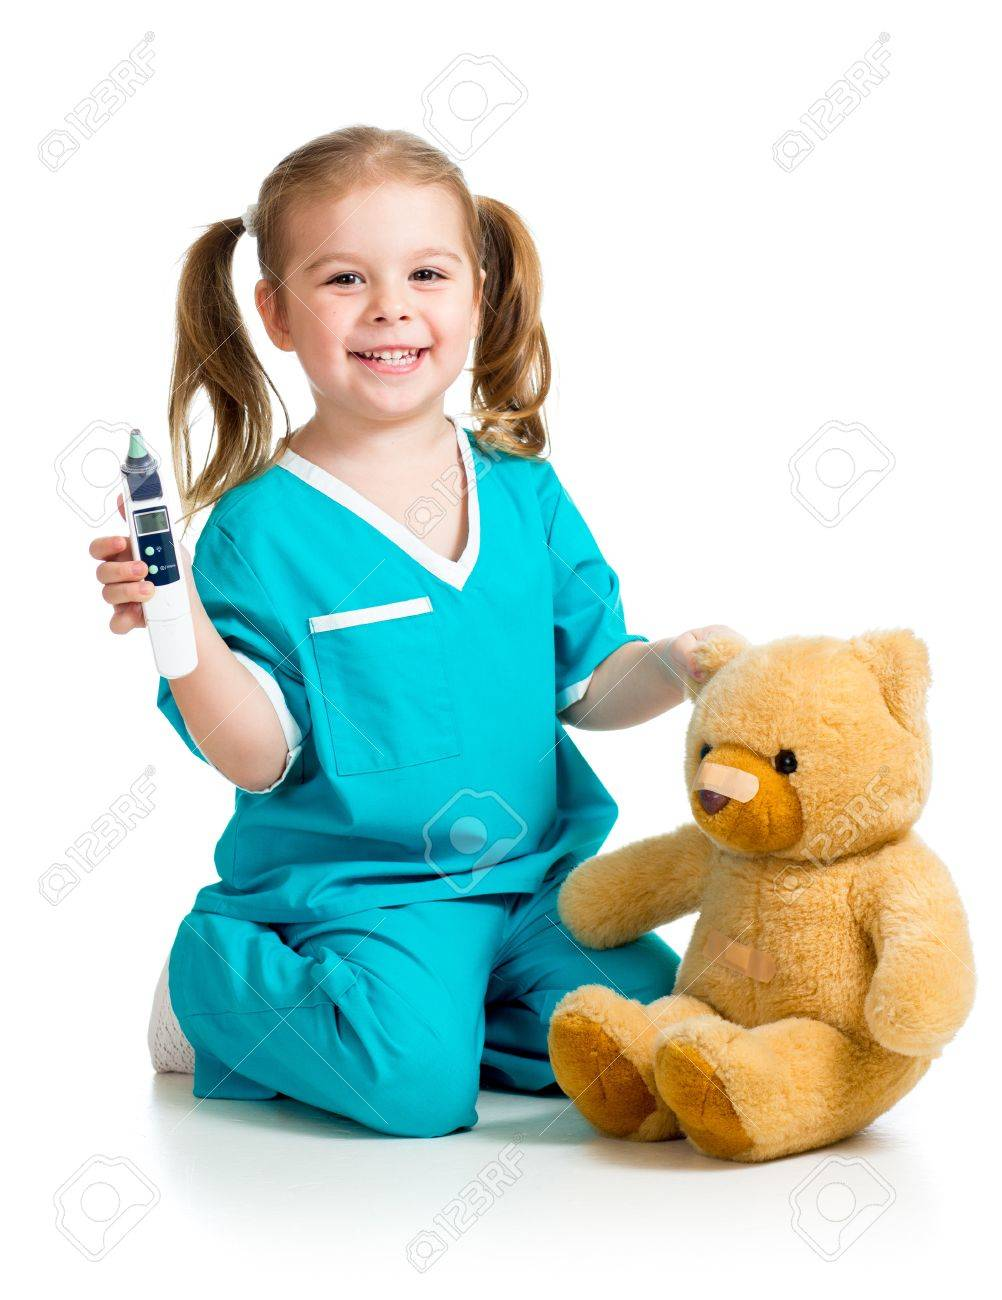 doctor girl playing and measuring  temperature toyl isolated on white background Stock Photo - 17283518